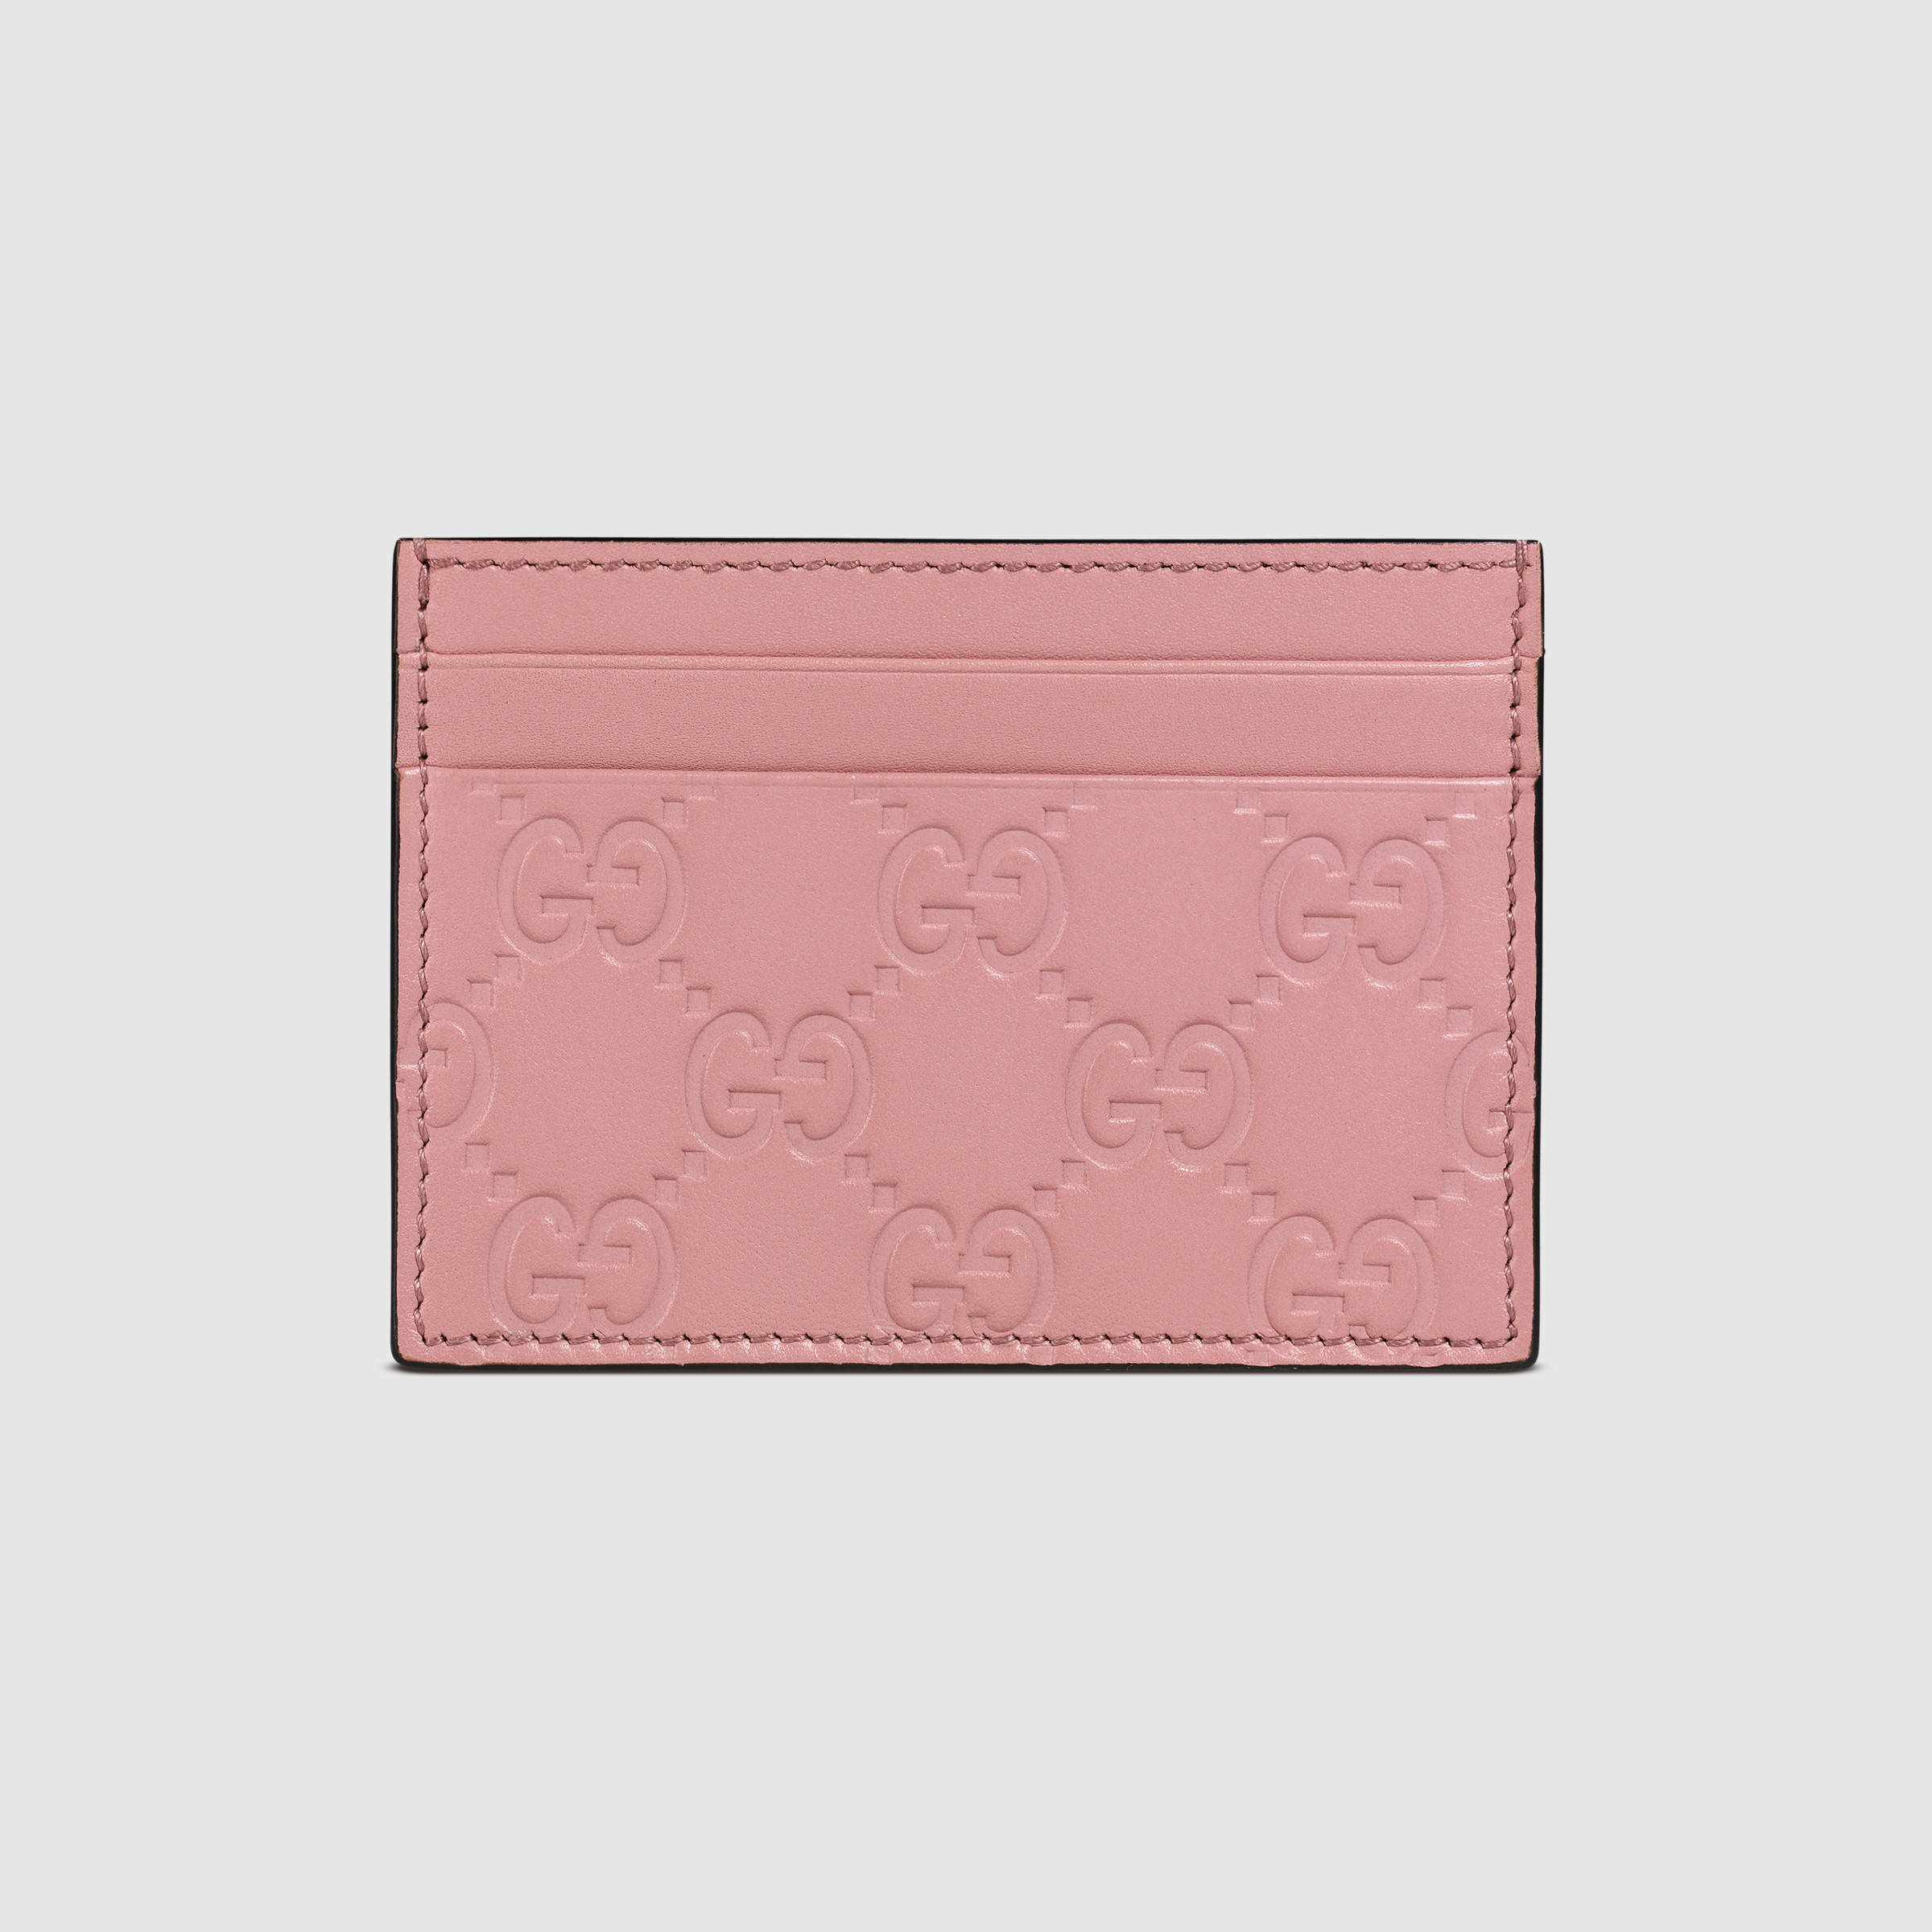 info for 8d7e7 4040f Women's Pink Signature Leather Card Case